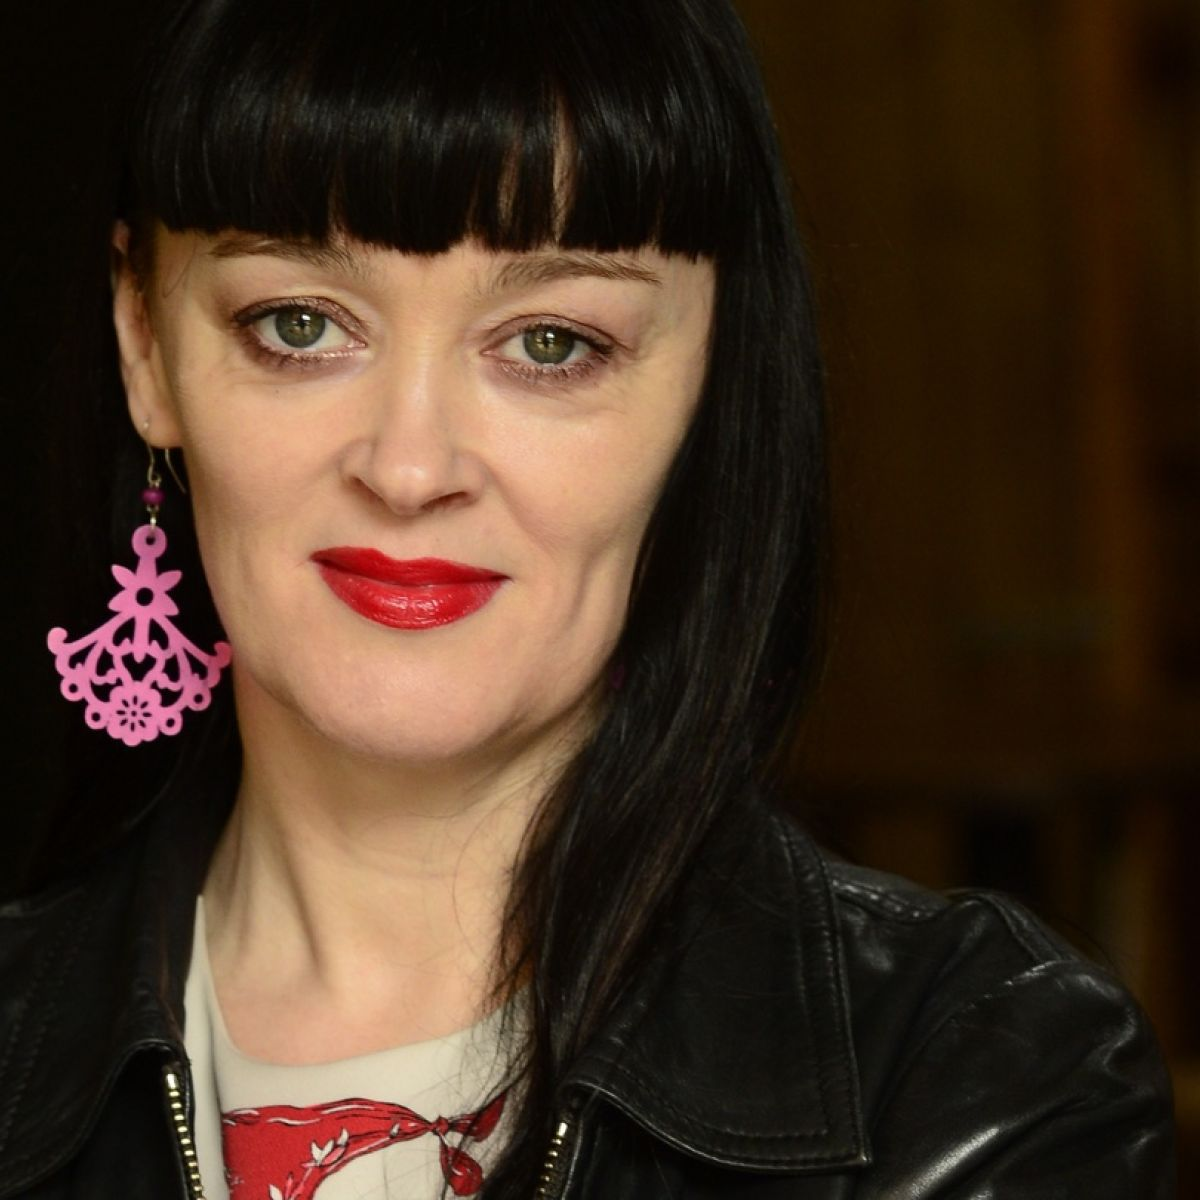 Bronagh Gallagher naked (66 foto and video), Pussy, Leaked, Boobs, panties 2019